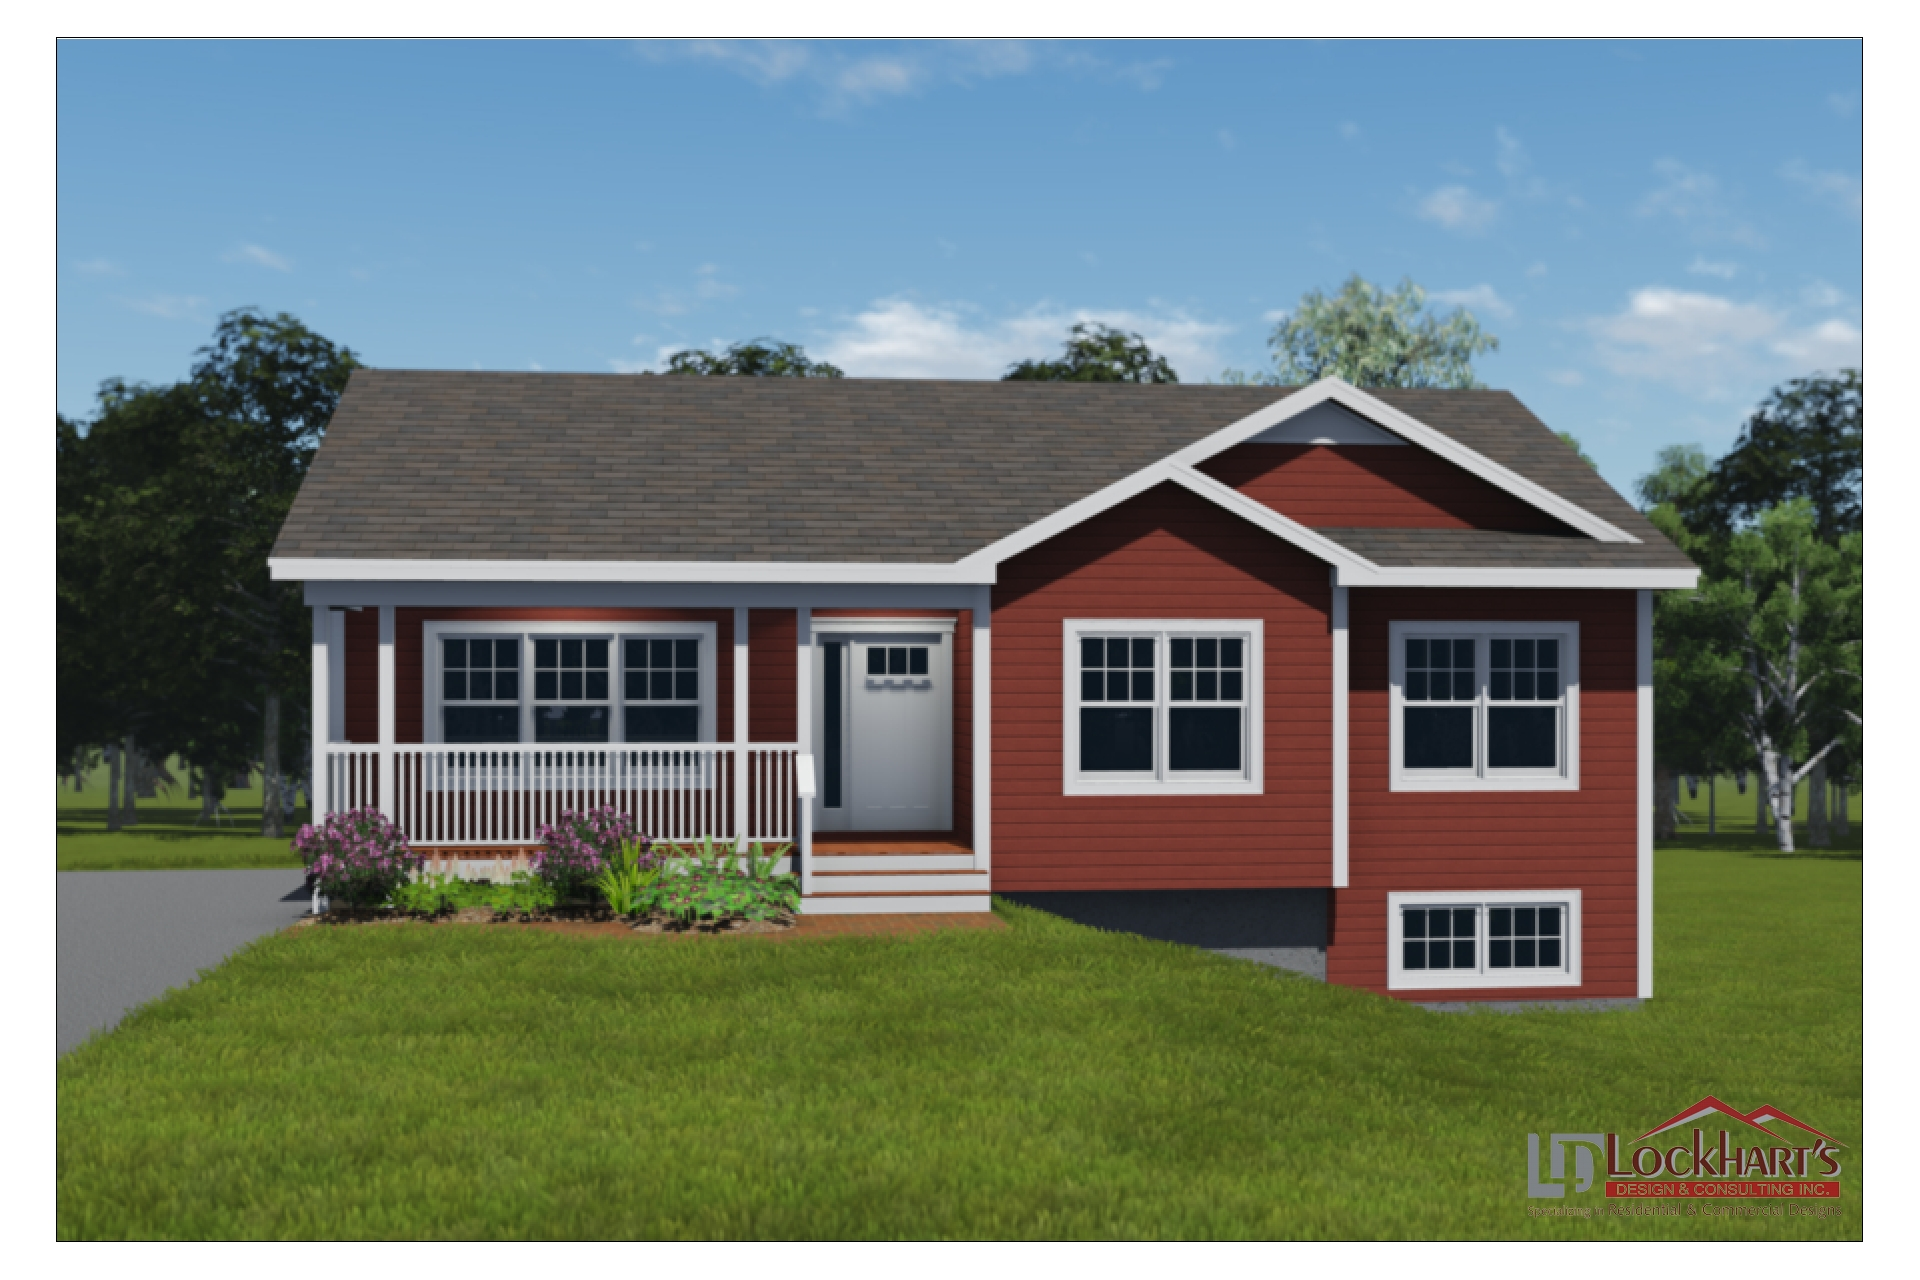 Lockhart's Design House Plan 1031 - Chignecto